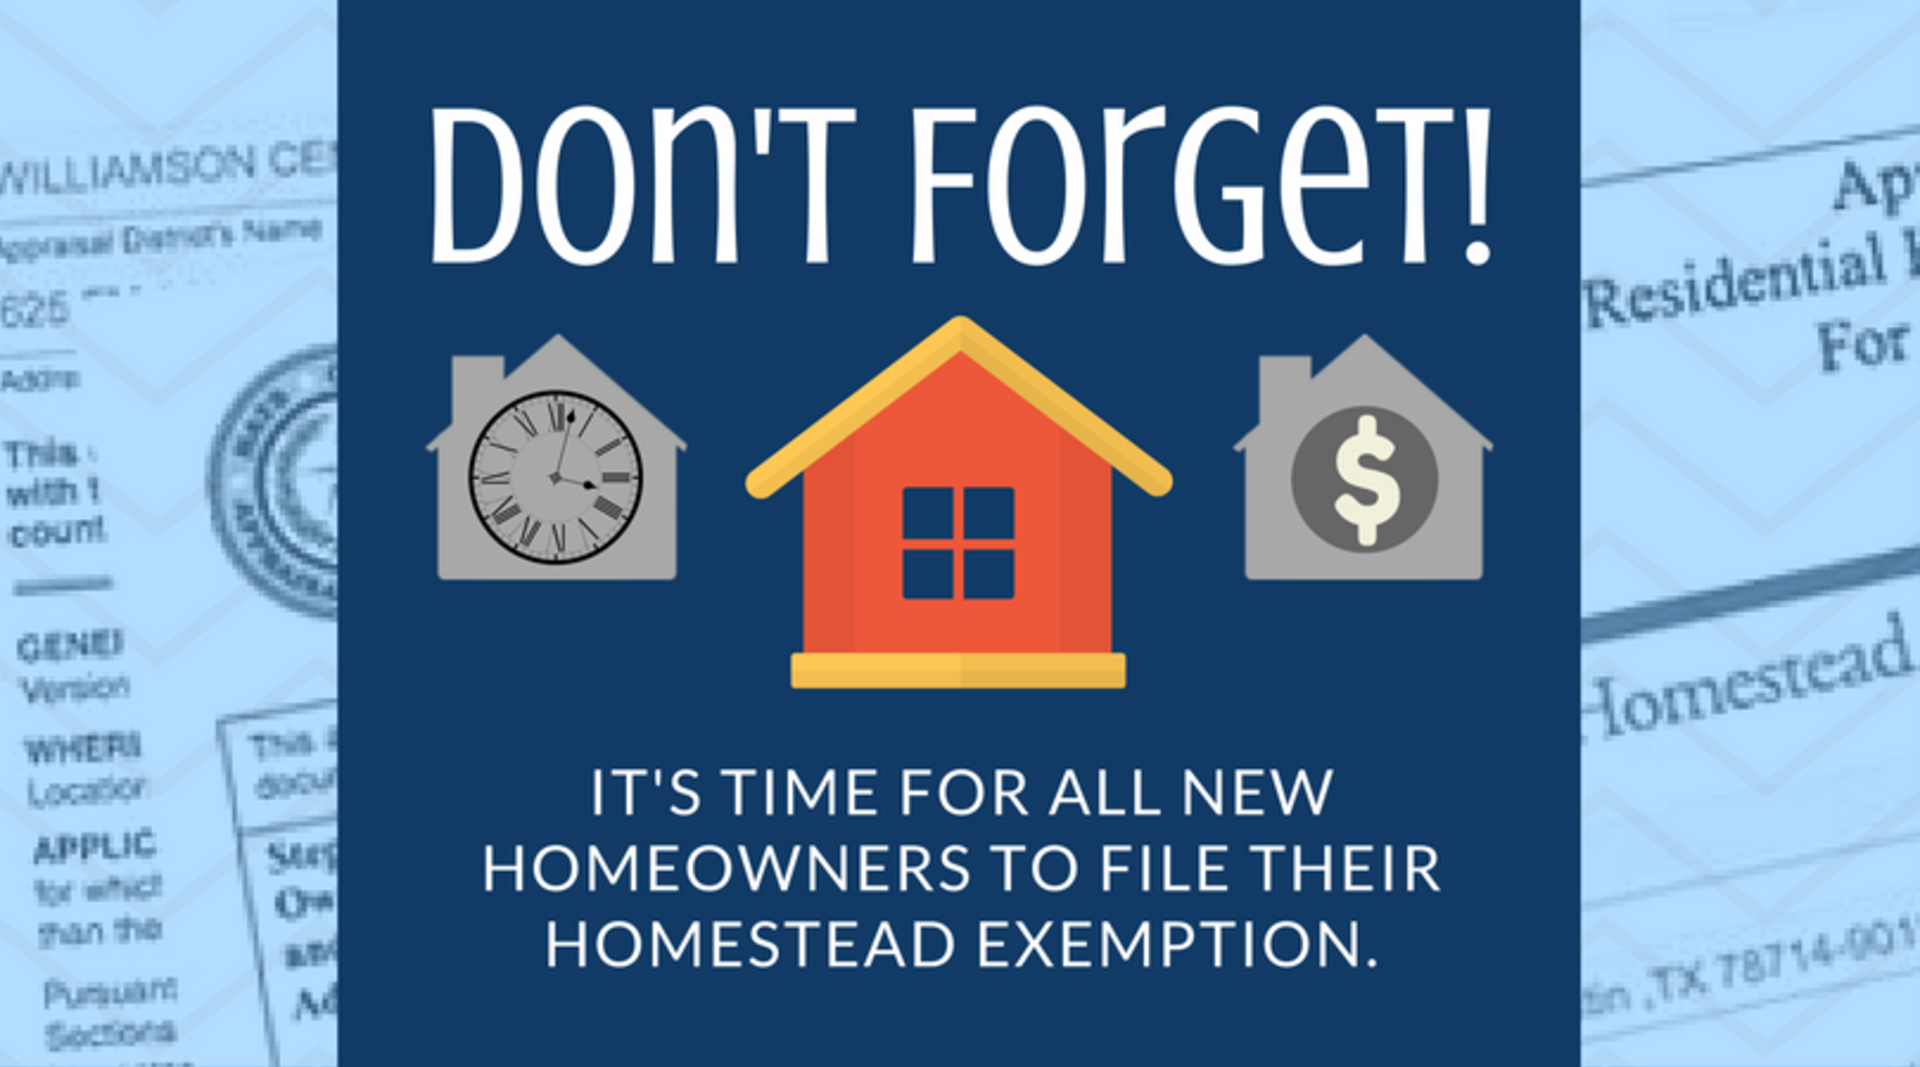 How To File Your Homestead Exemption in DFW